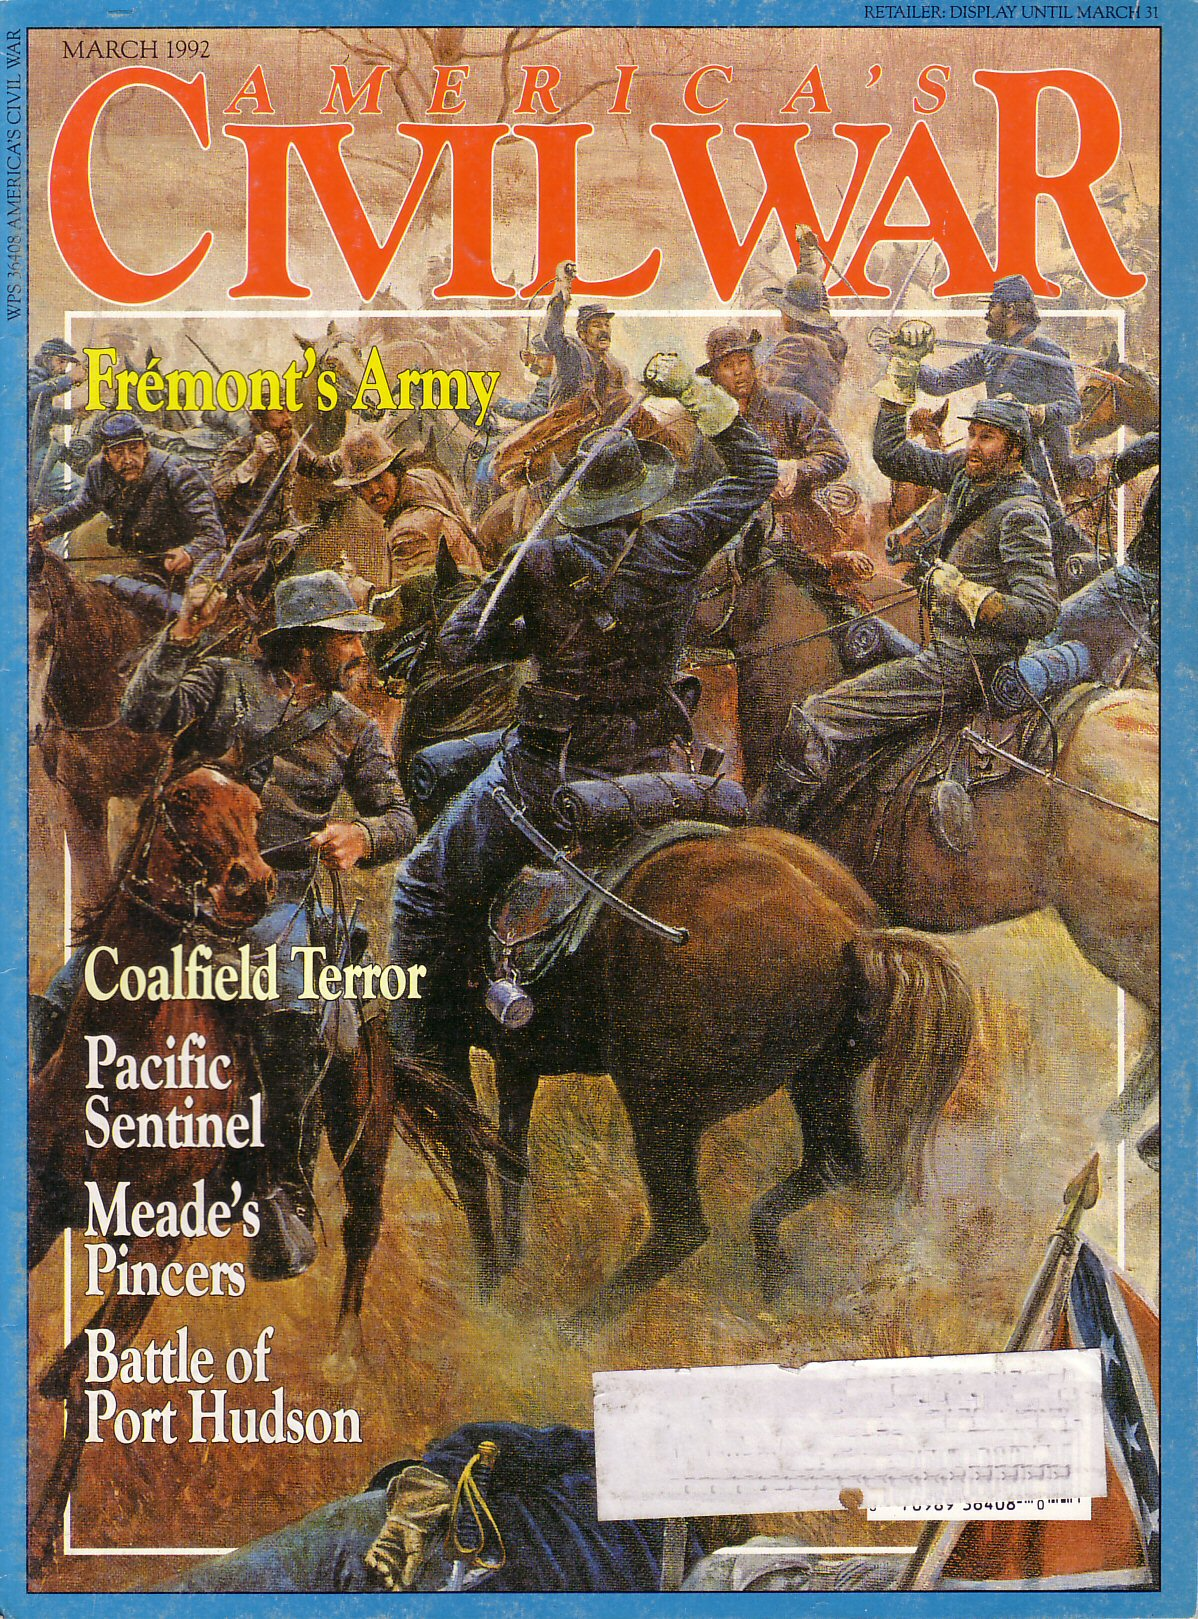 Americas Civil War, Volume 4, Number 6 (March 1992)